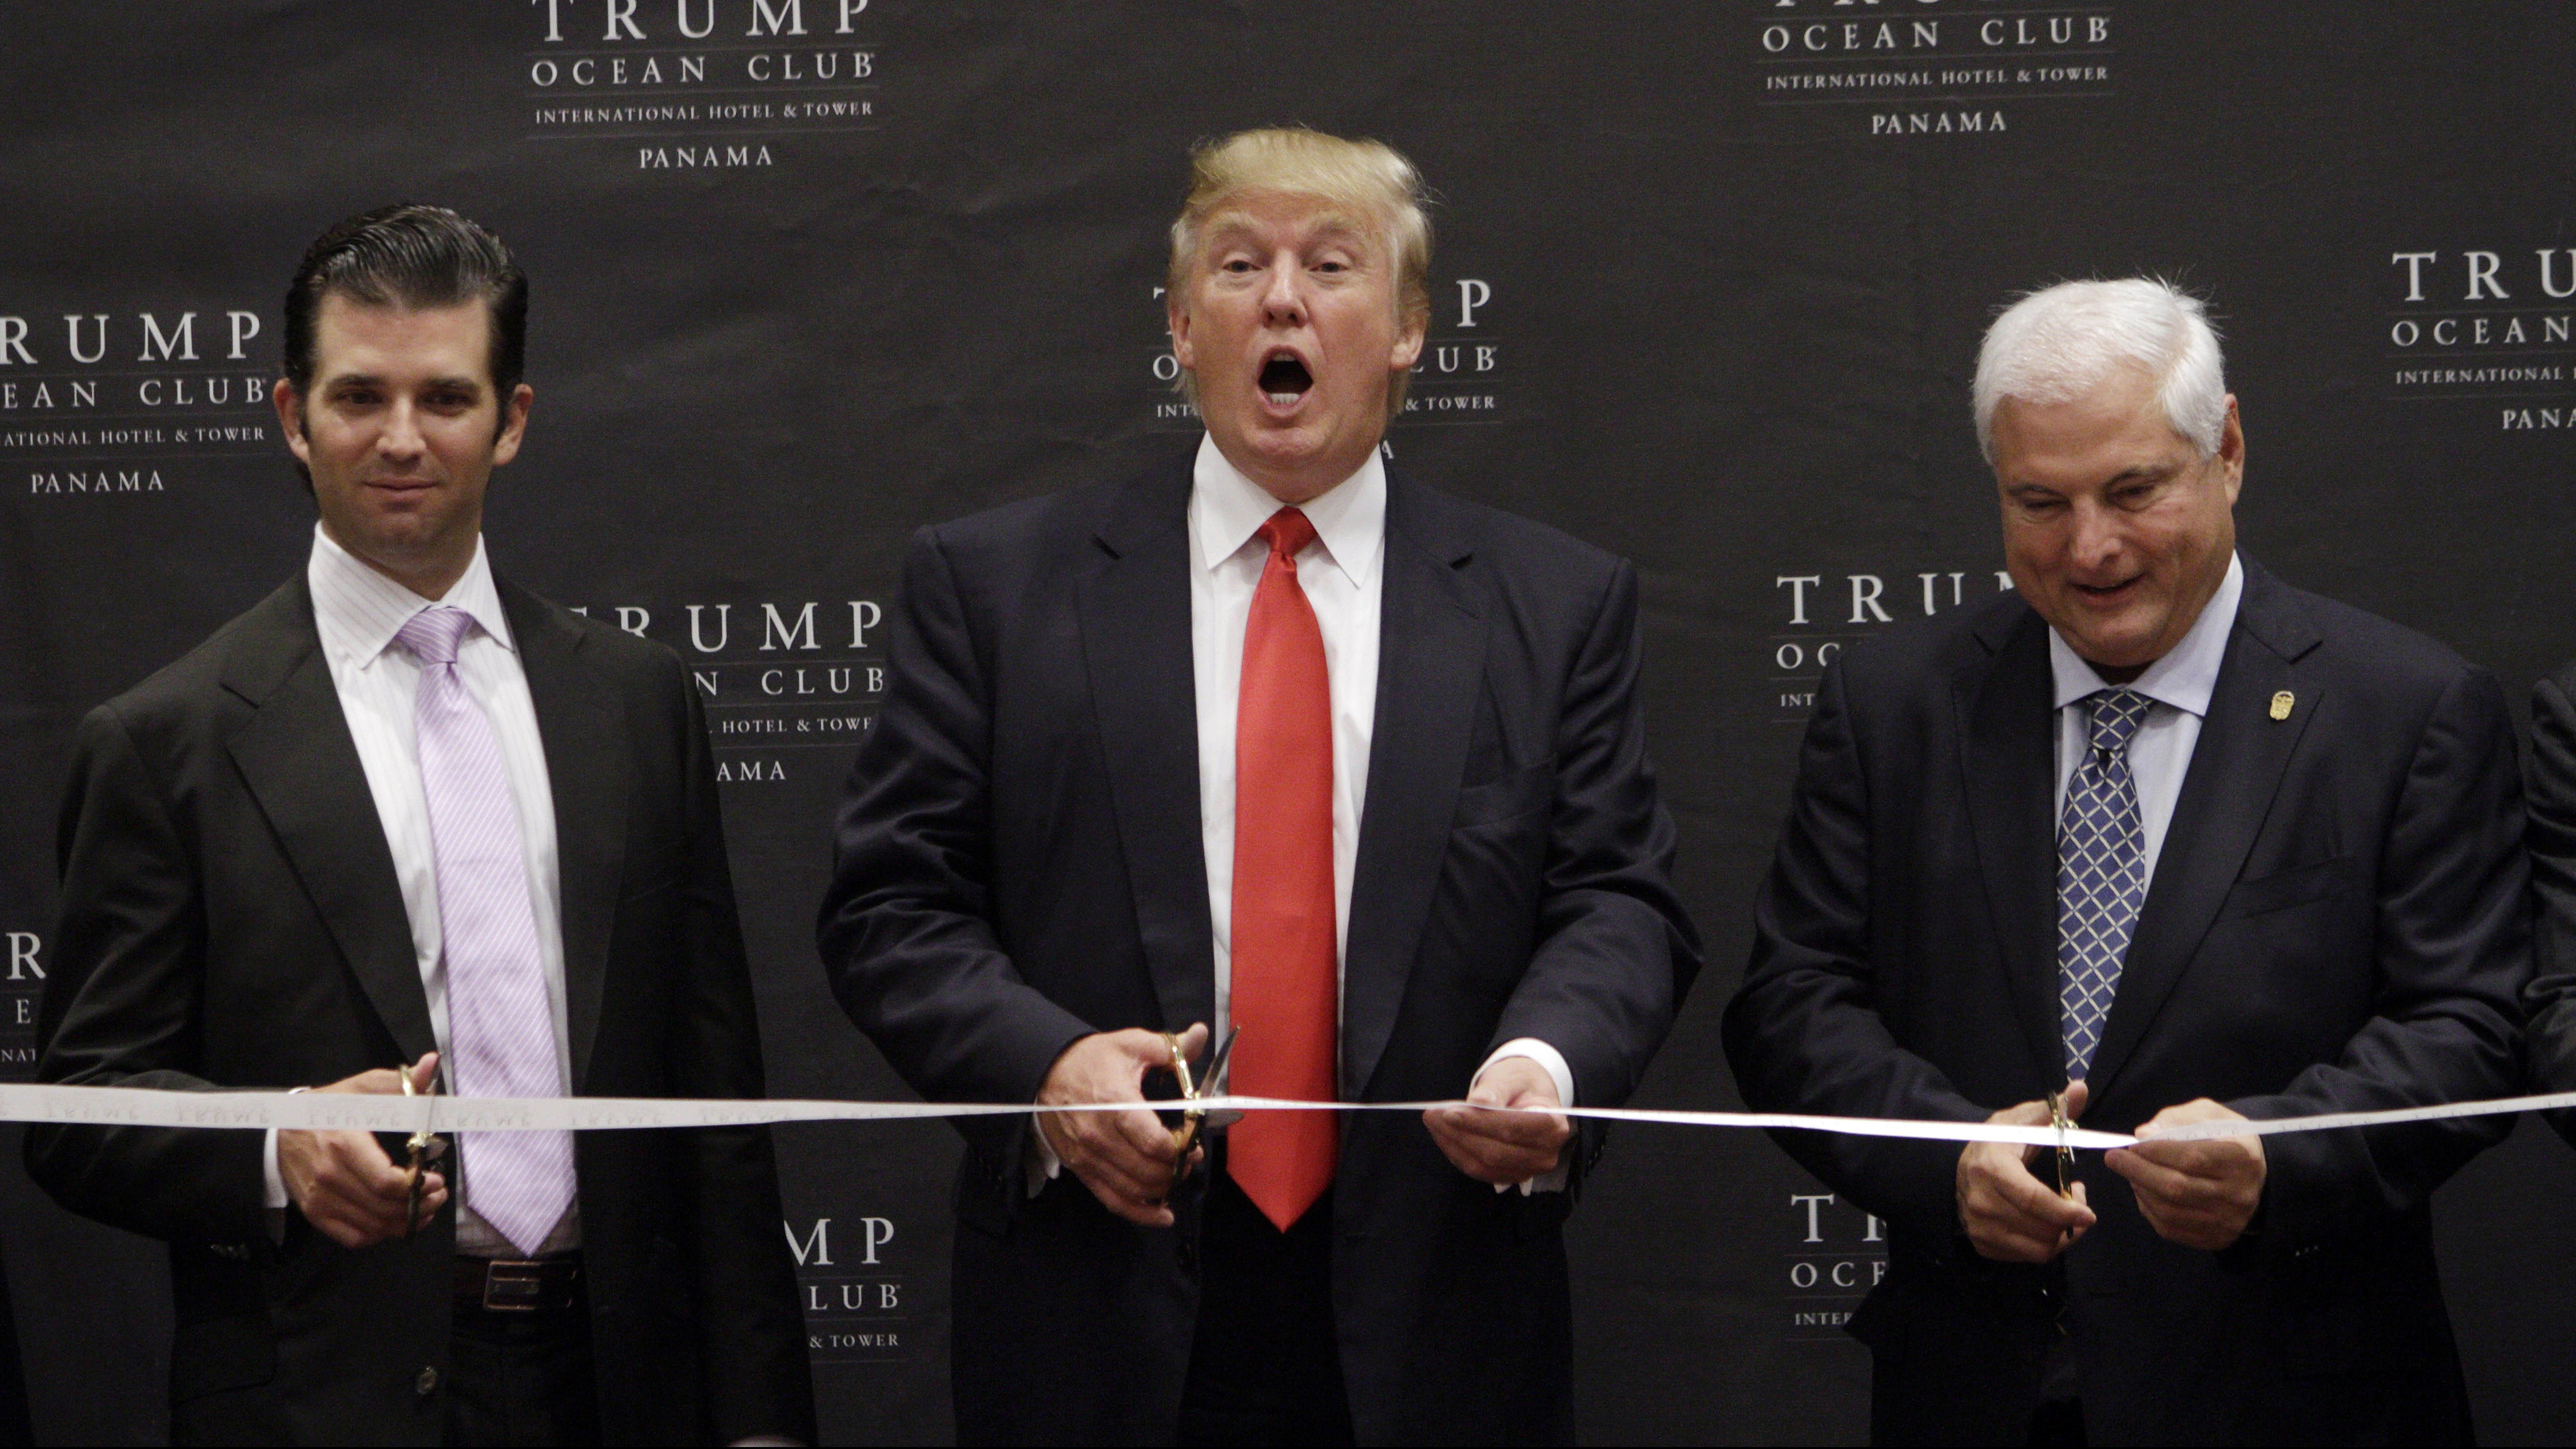 U.S. tycoon Donald Trump, center, his son Donald Trump Jr., left, and Panama's President Ricardo Martinelli cut the ribbon at the inauguration ceremony of the Trump Ocean Club International Hotel and Tower in Panama City, Wednesday July 6, 2011. According to the organizer, the 70-story luxury resort is the tallest building in Latin America. (AP Photo/Arnulfo Franco)